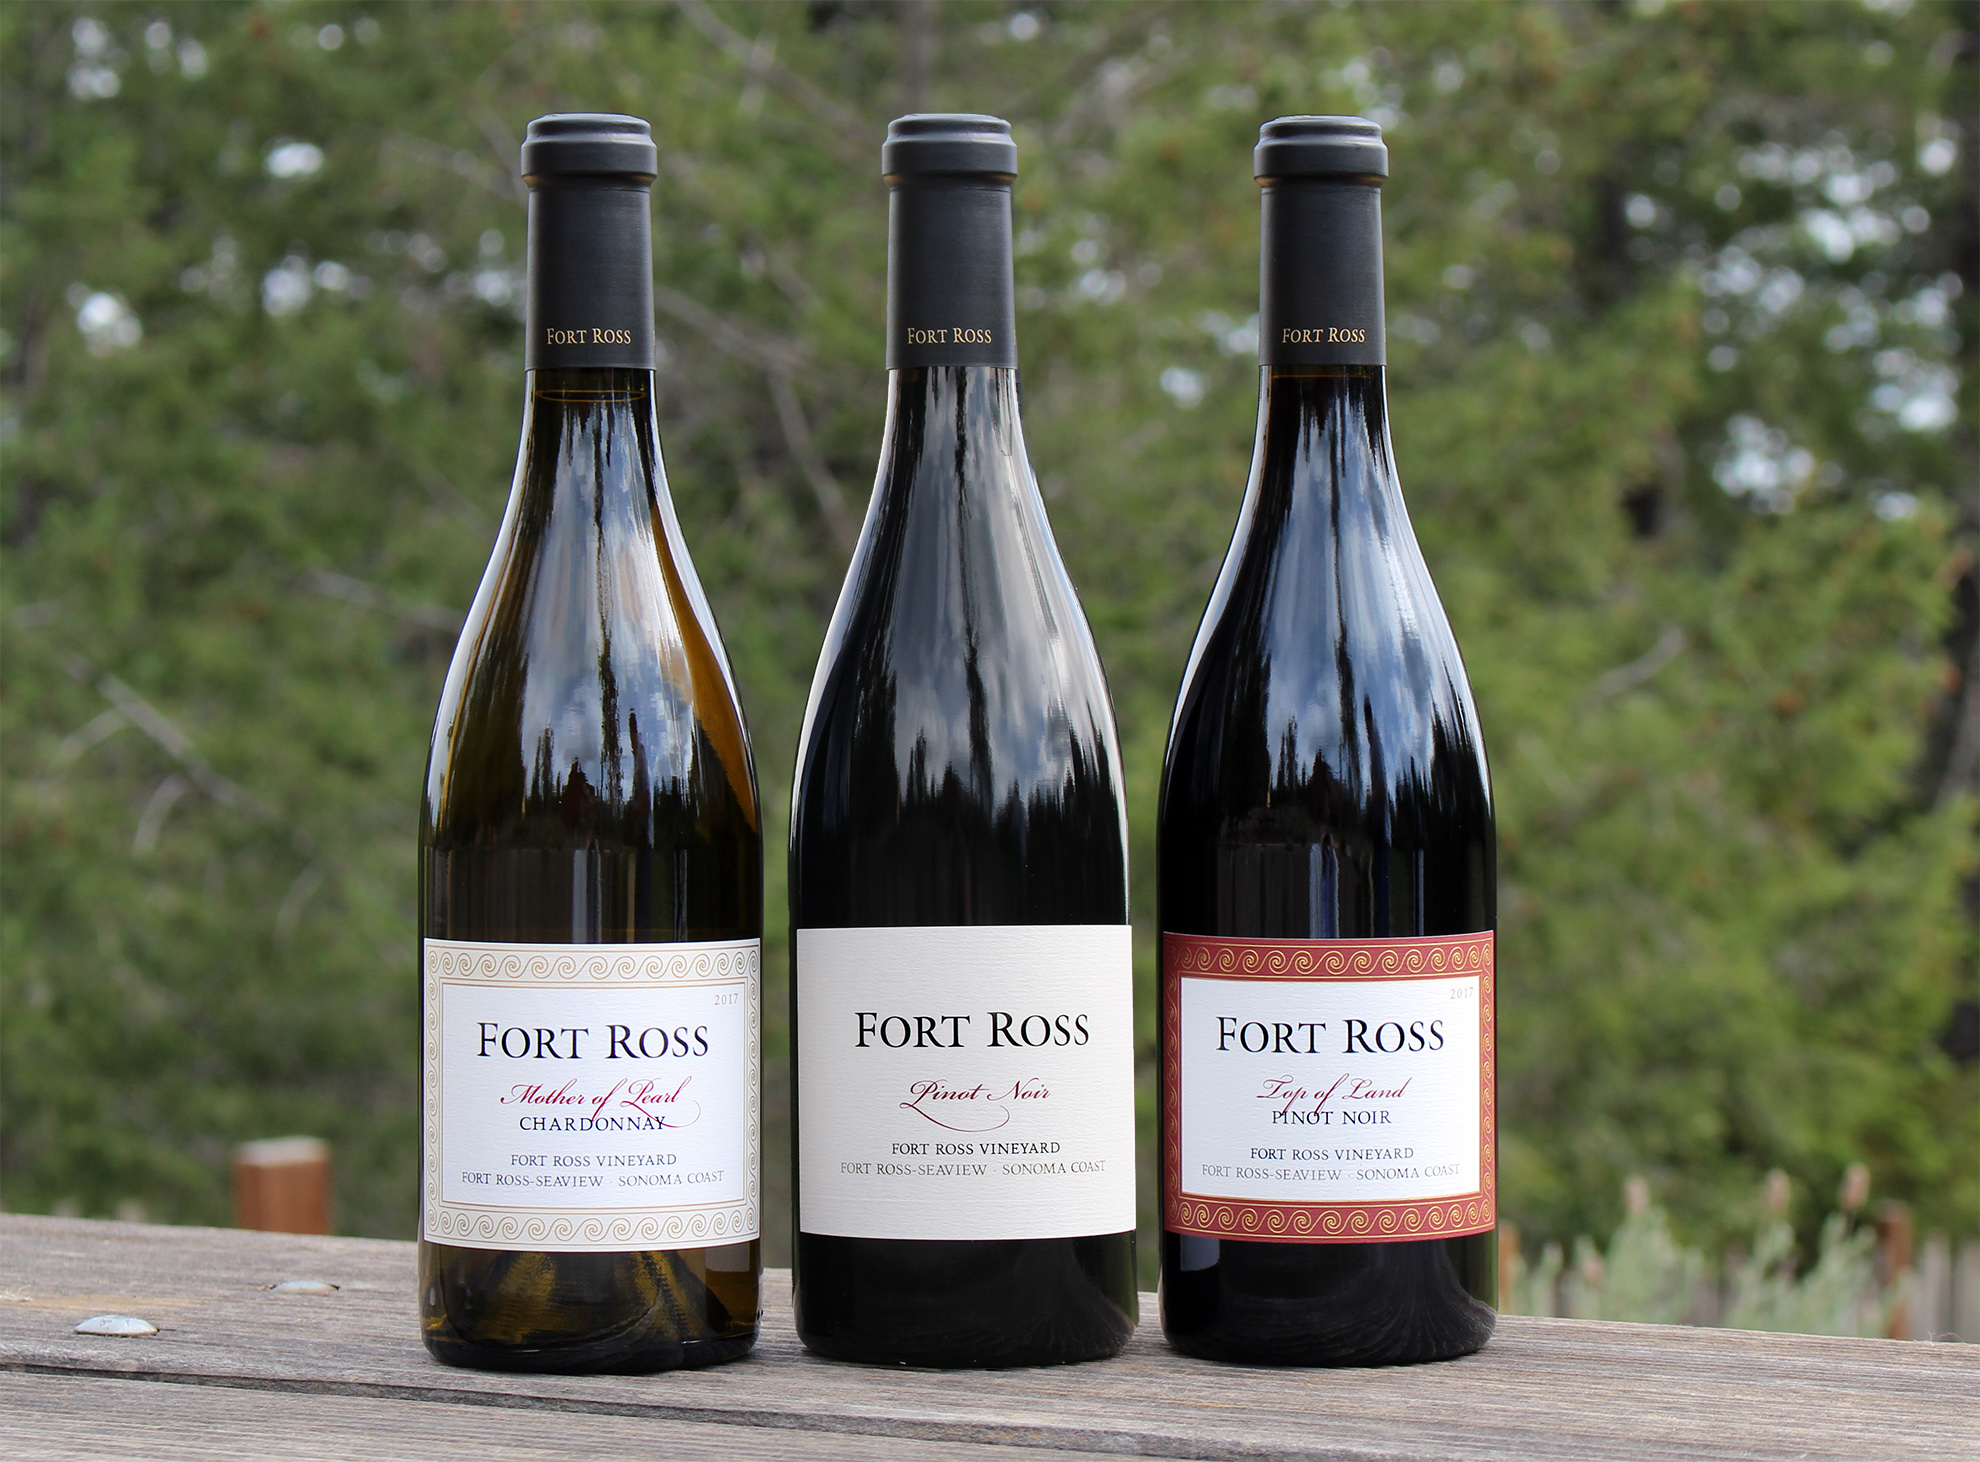 spring_releases_mother_of_pearl_chardonnay_frv_pinot_noir_top_of_the_land_pinot_noir